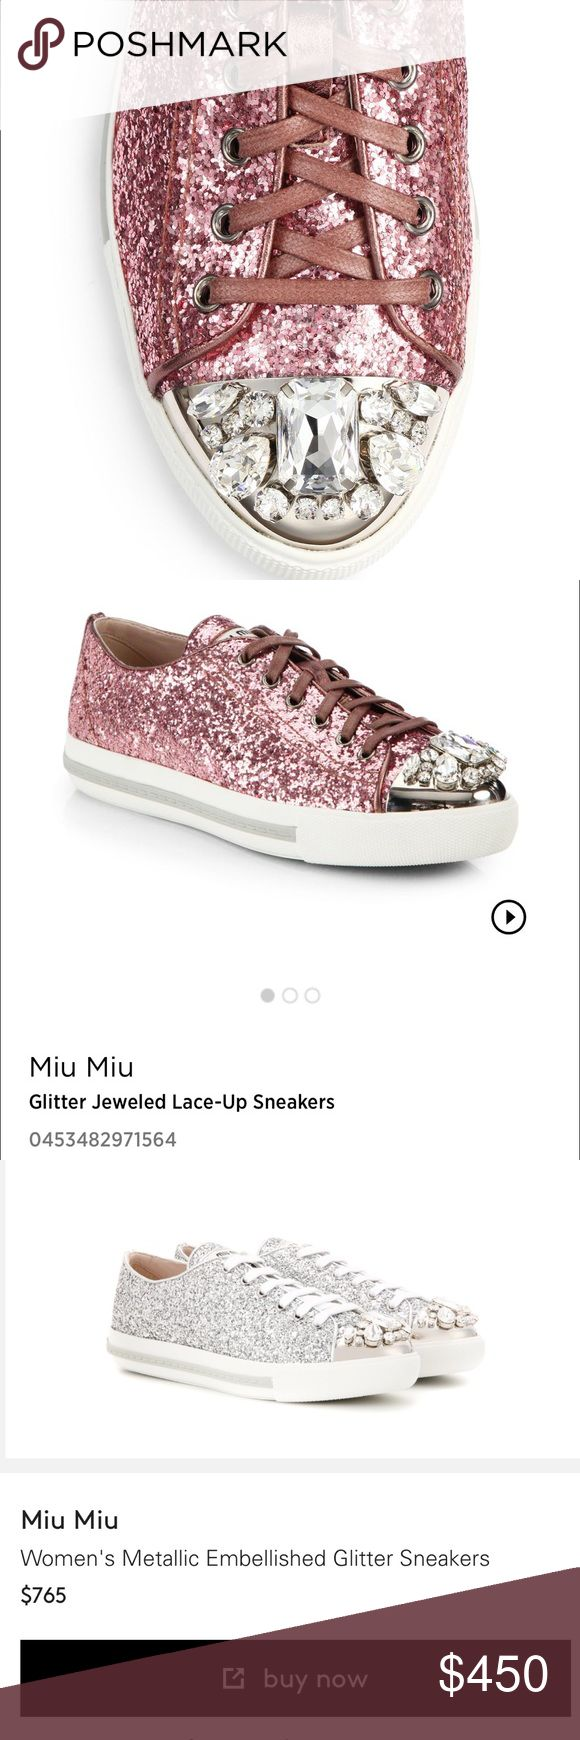 ✨Miu Miu Pink Glitter Sneakers size 35 1/2 ✨ Miu Miu Sneakers size 35 1/2 Autentic Preown Great condition!!! Beautiful !!!✨ SOLD OUT more description on pictures! More picture coming soon!!! Miu Miu Shoes Sneakers